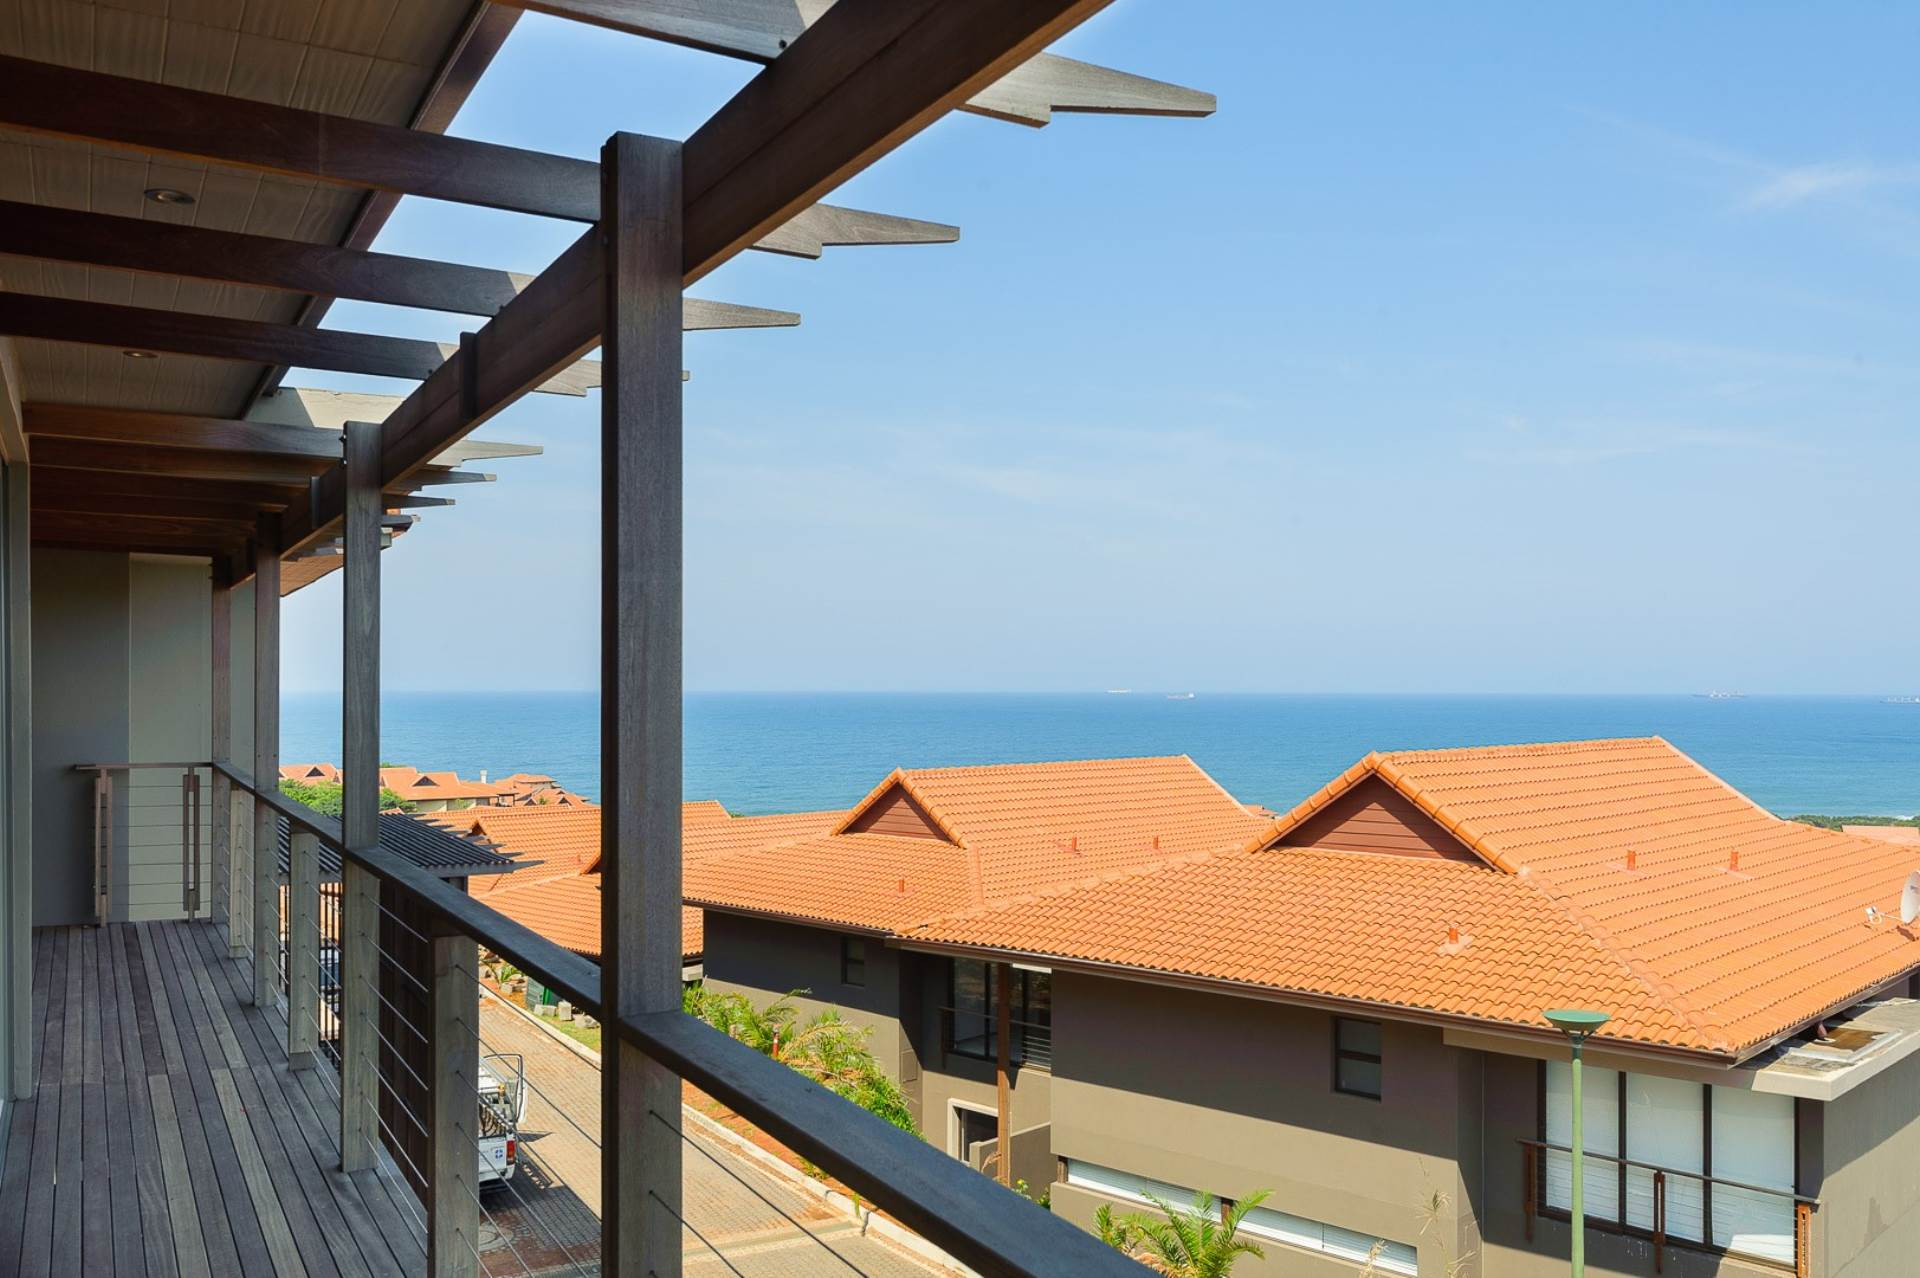 4 BedroomHouse For Sale In Zimbali